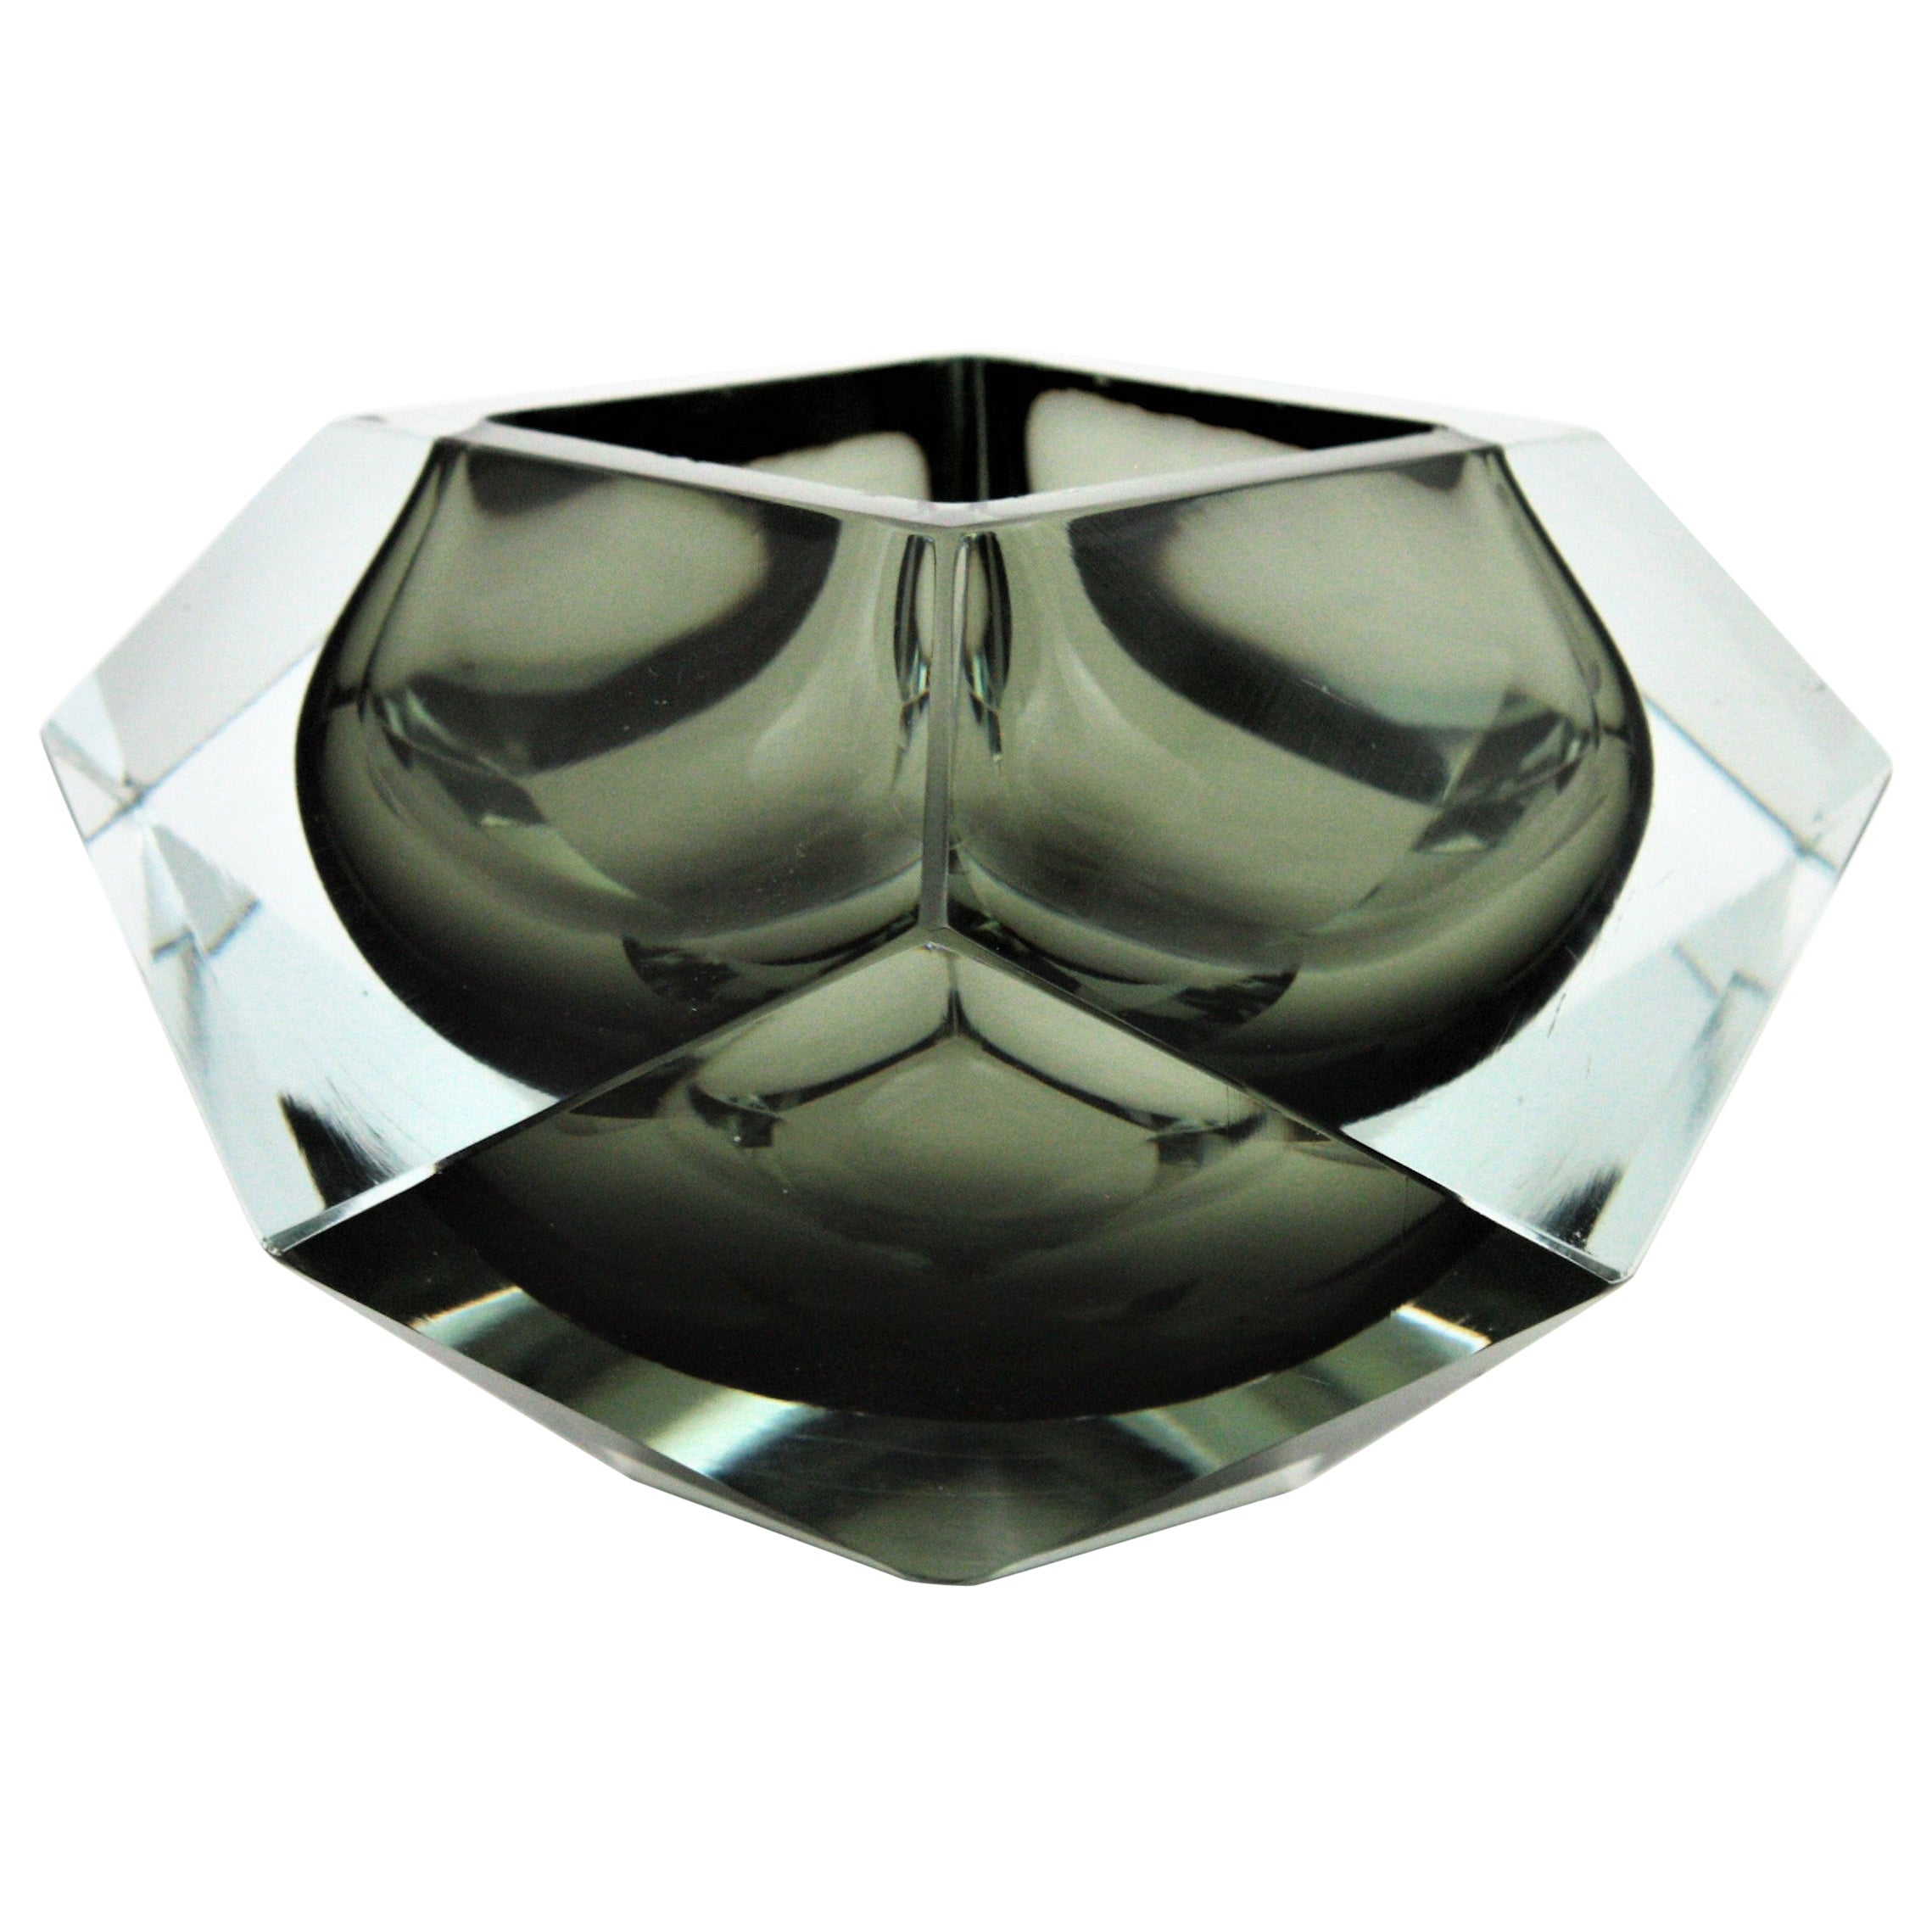 XXL Flavio Poli Smoked Grey and Clear Faceted Murano Glass Bowl or Ashtray